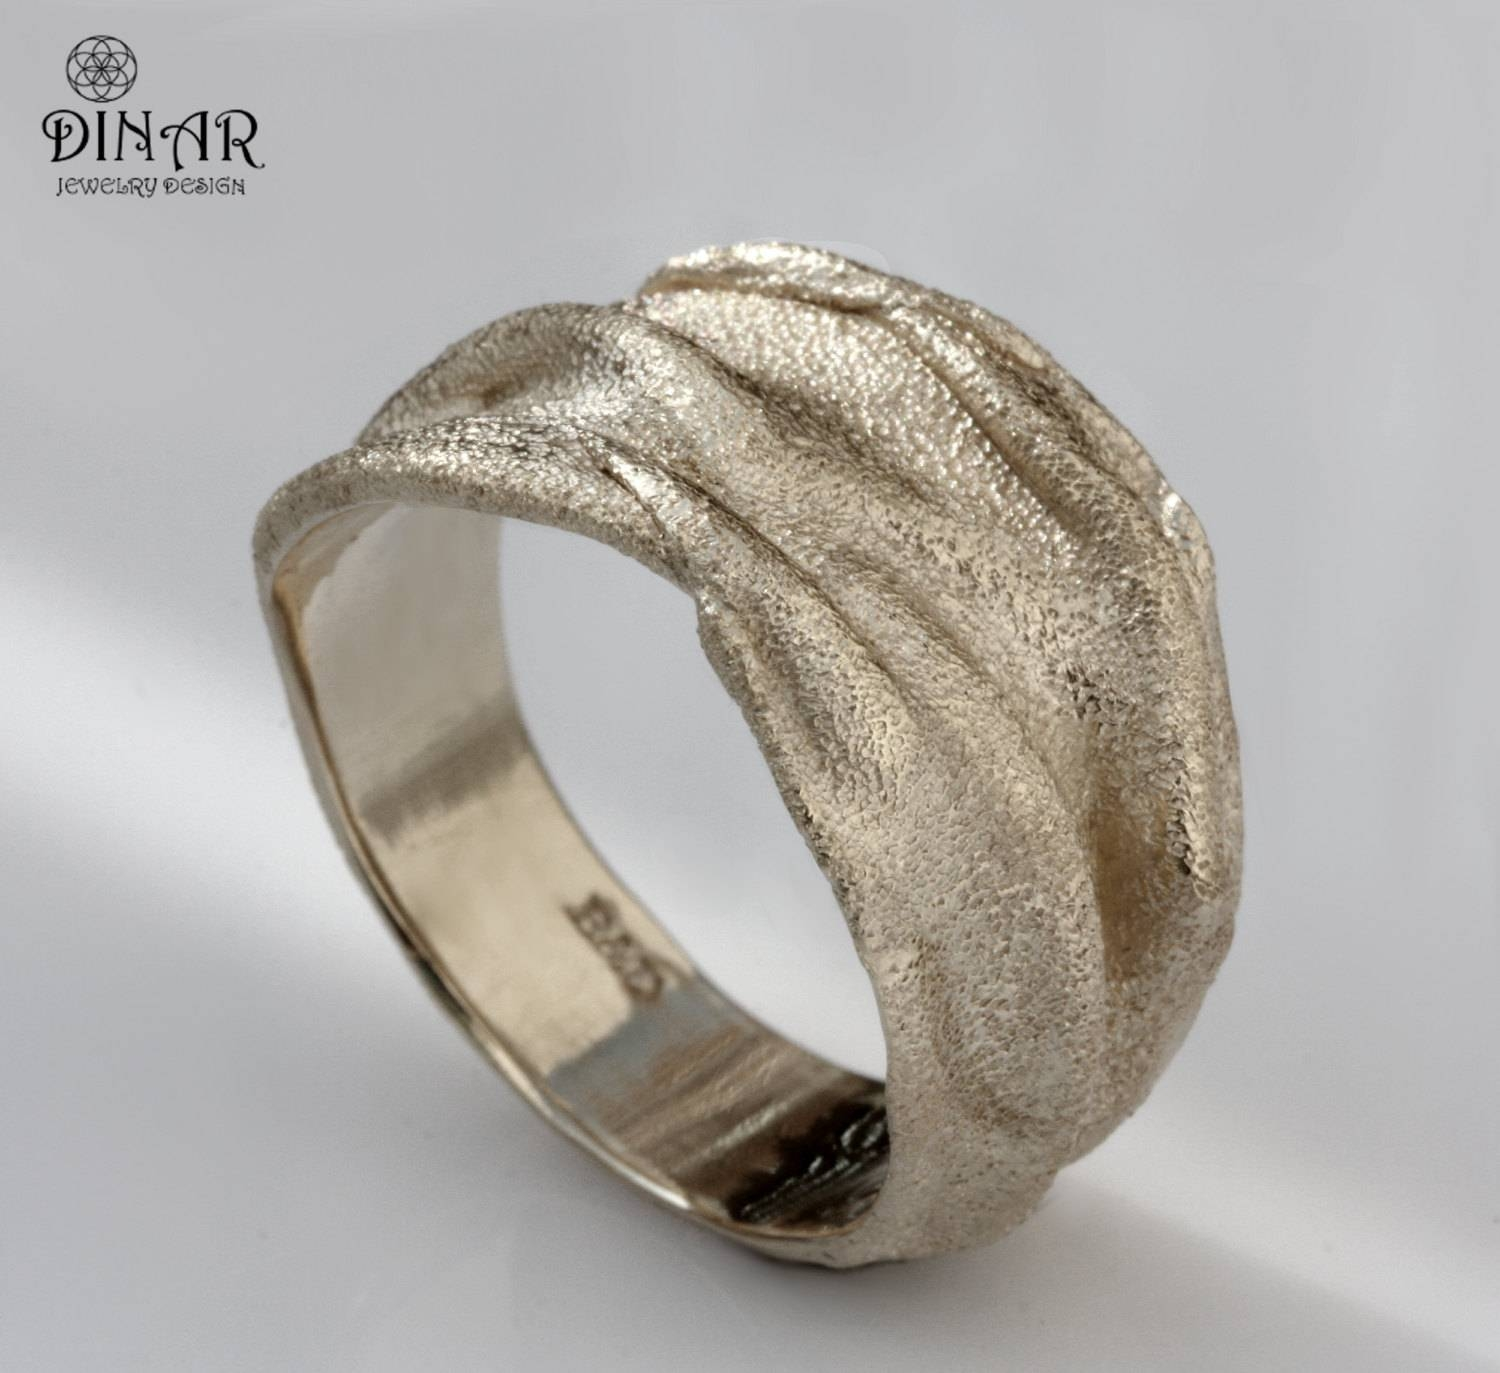 White Gold Wedding Band 18K Gold Men Band 14K Golddinarjewelry Throughout Latest Horizon Wedding Bands (View 15 of 15)